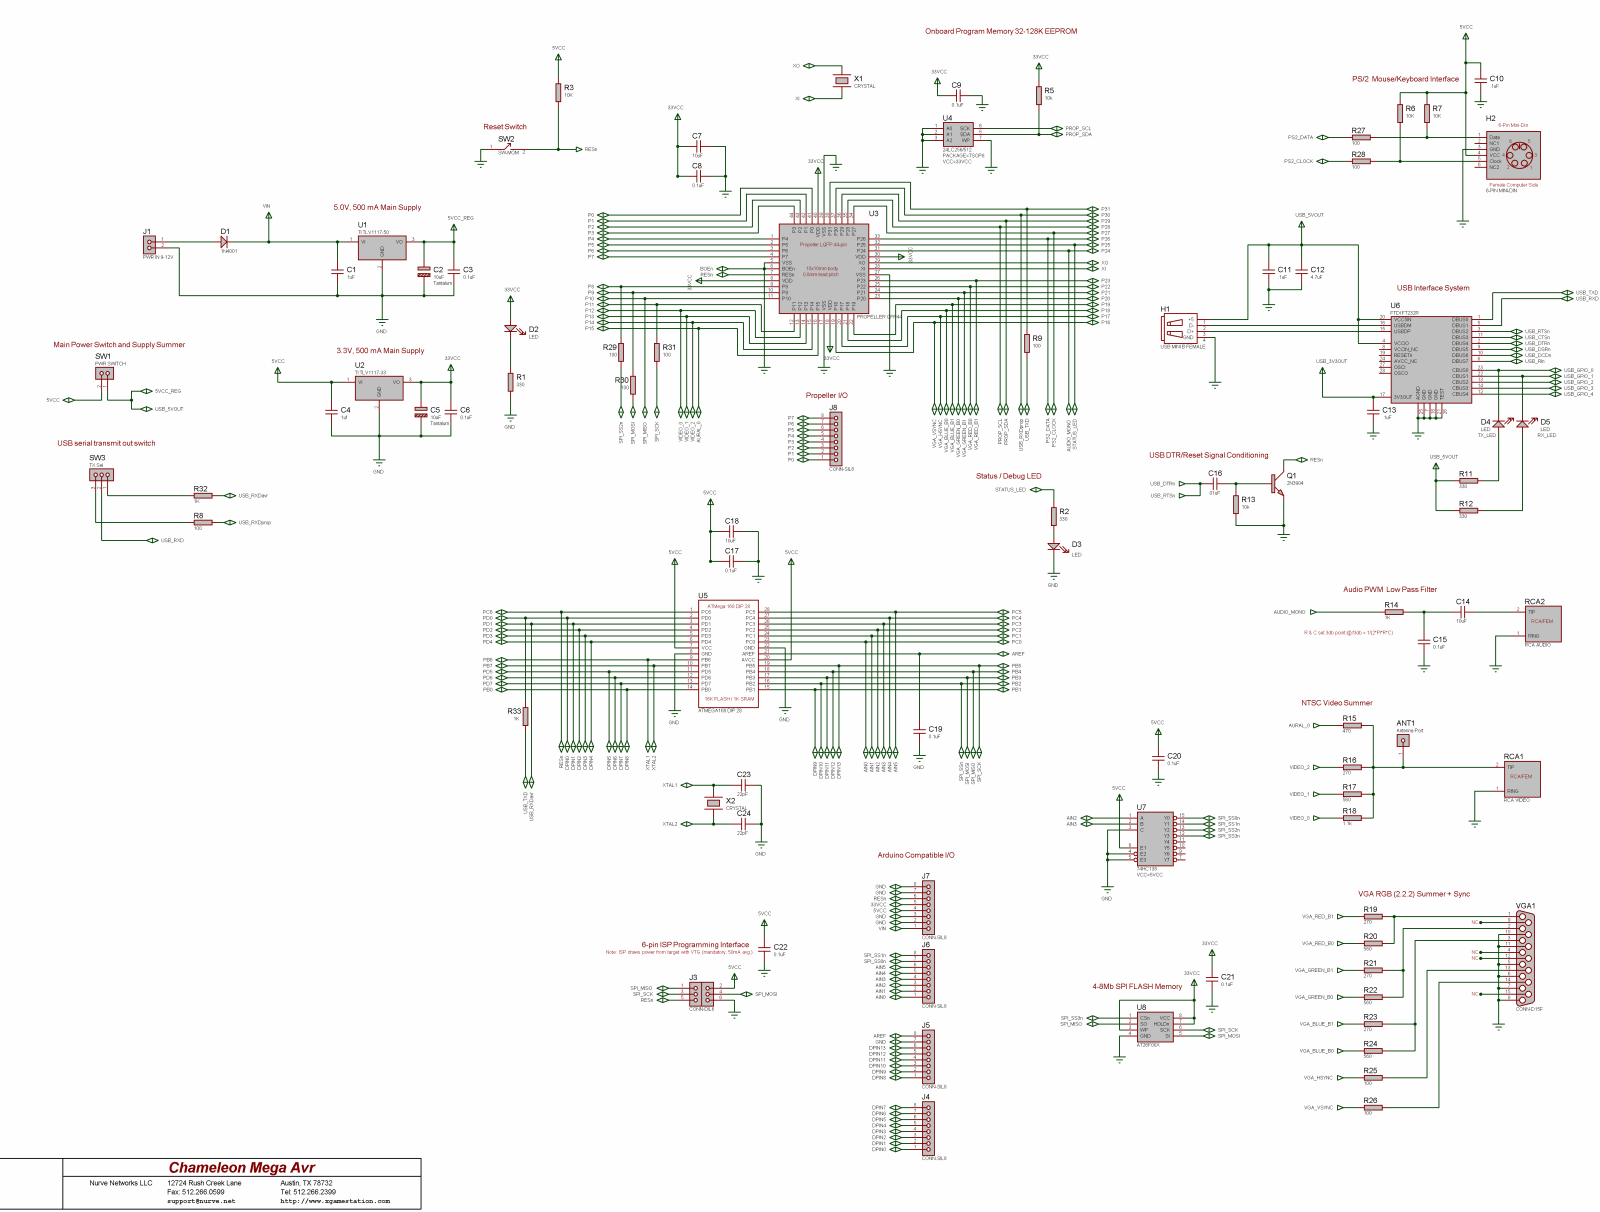 schematic diagram of matter kawasaki bayou 250 parts 8 bit computer get free image about wiring